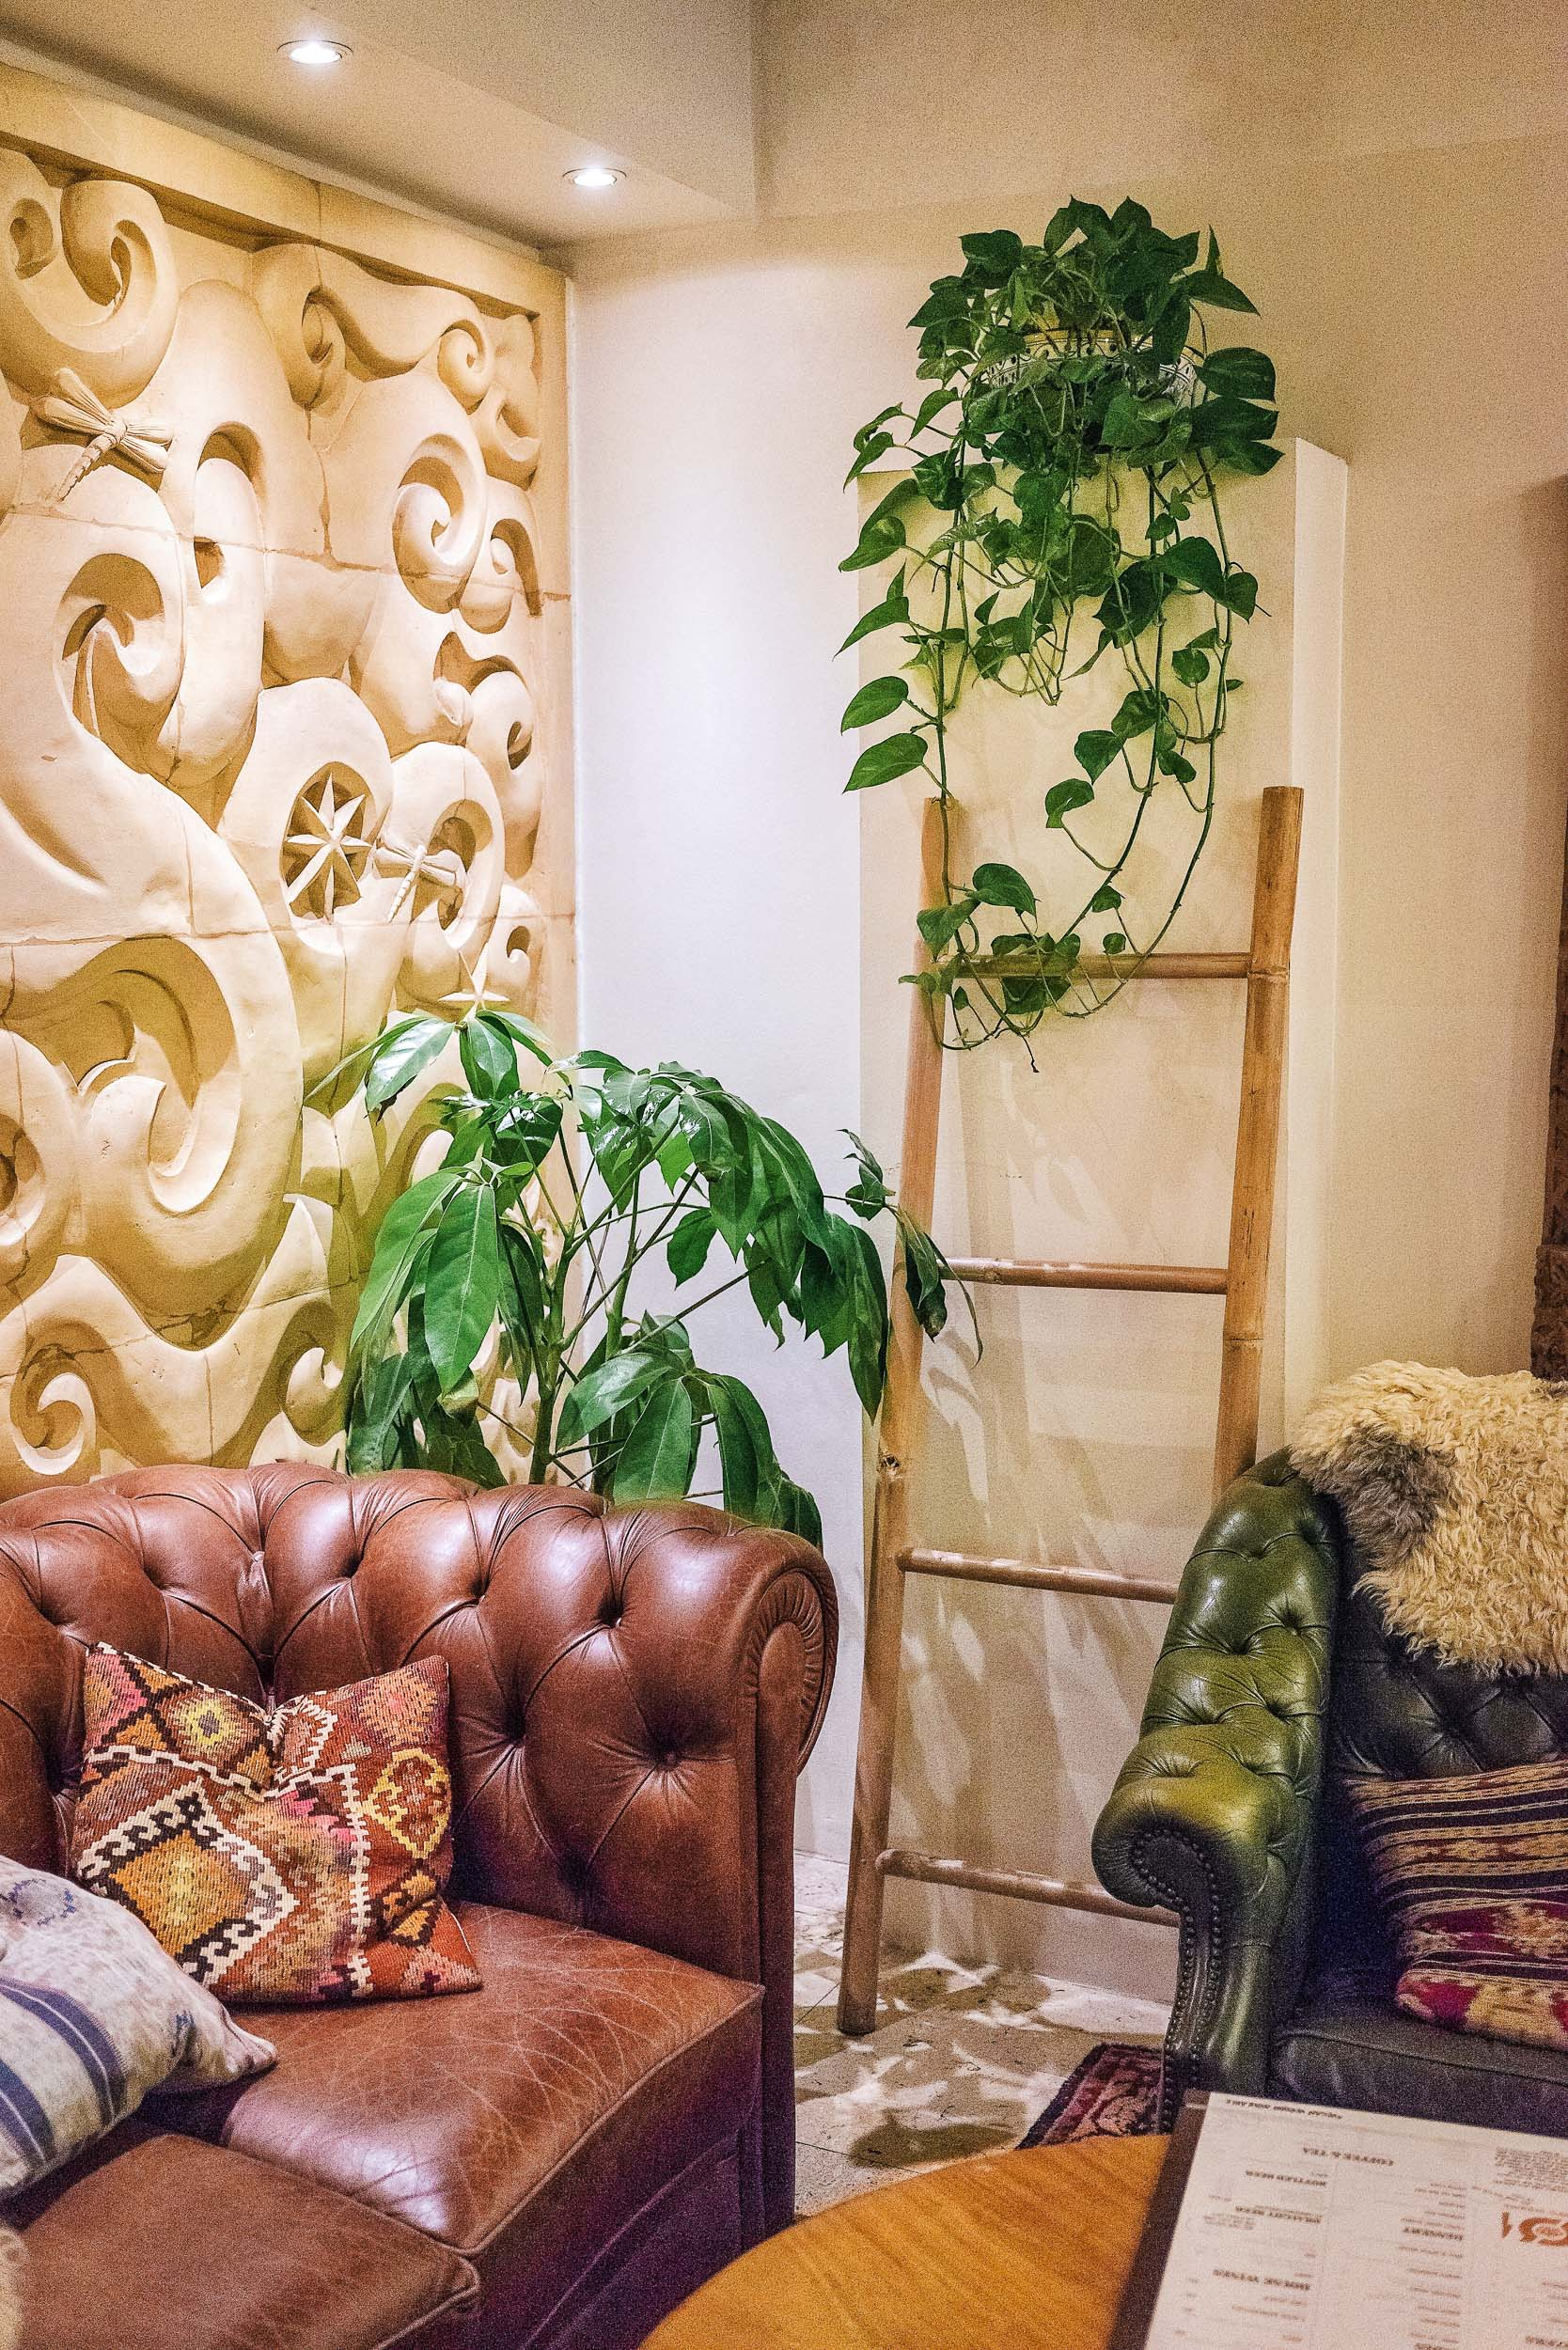 Where to stay in Copenhagen: Axel Guldsmeden. Beautifully decorated and perfectly located!